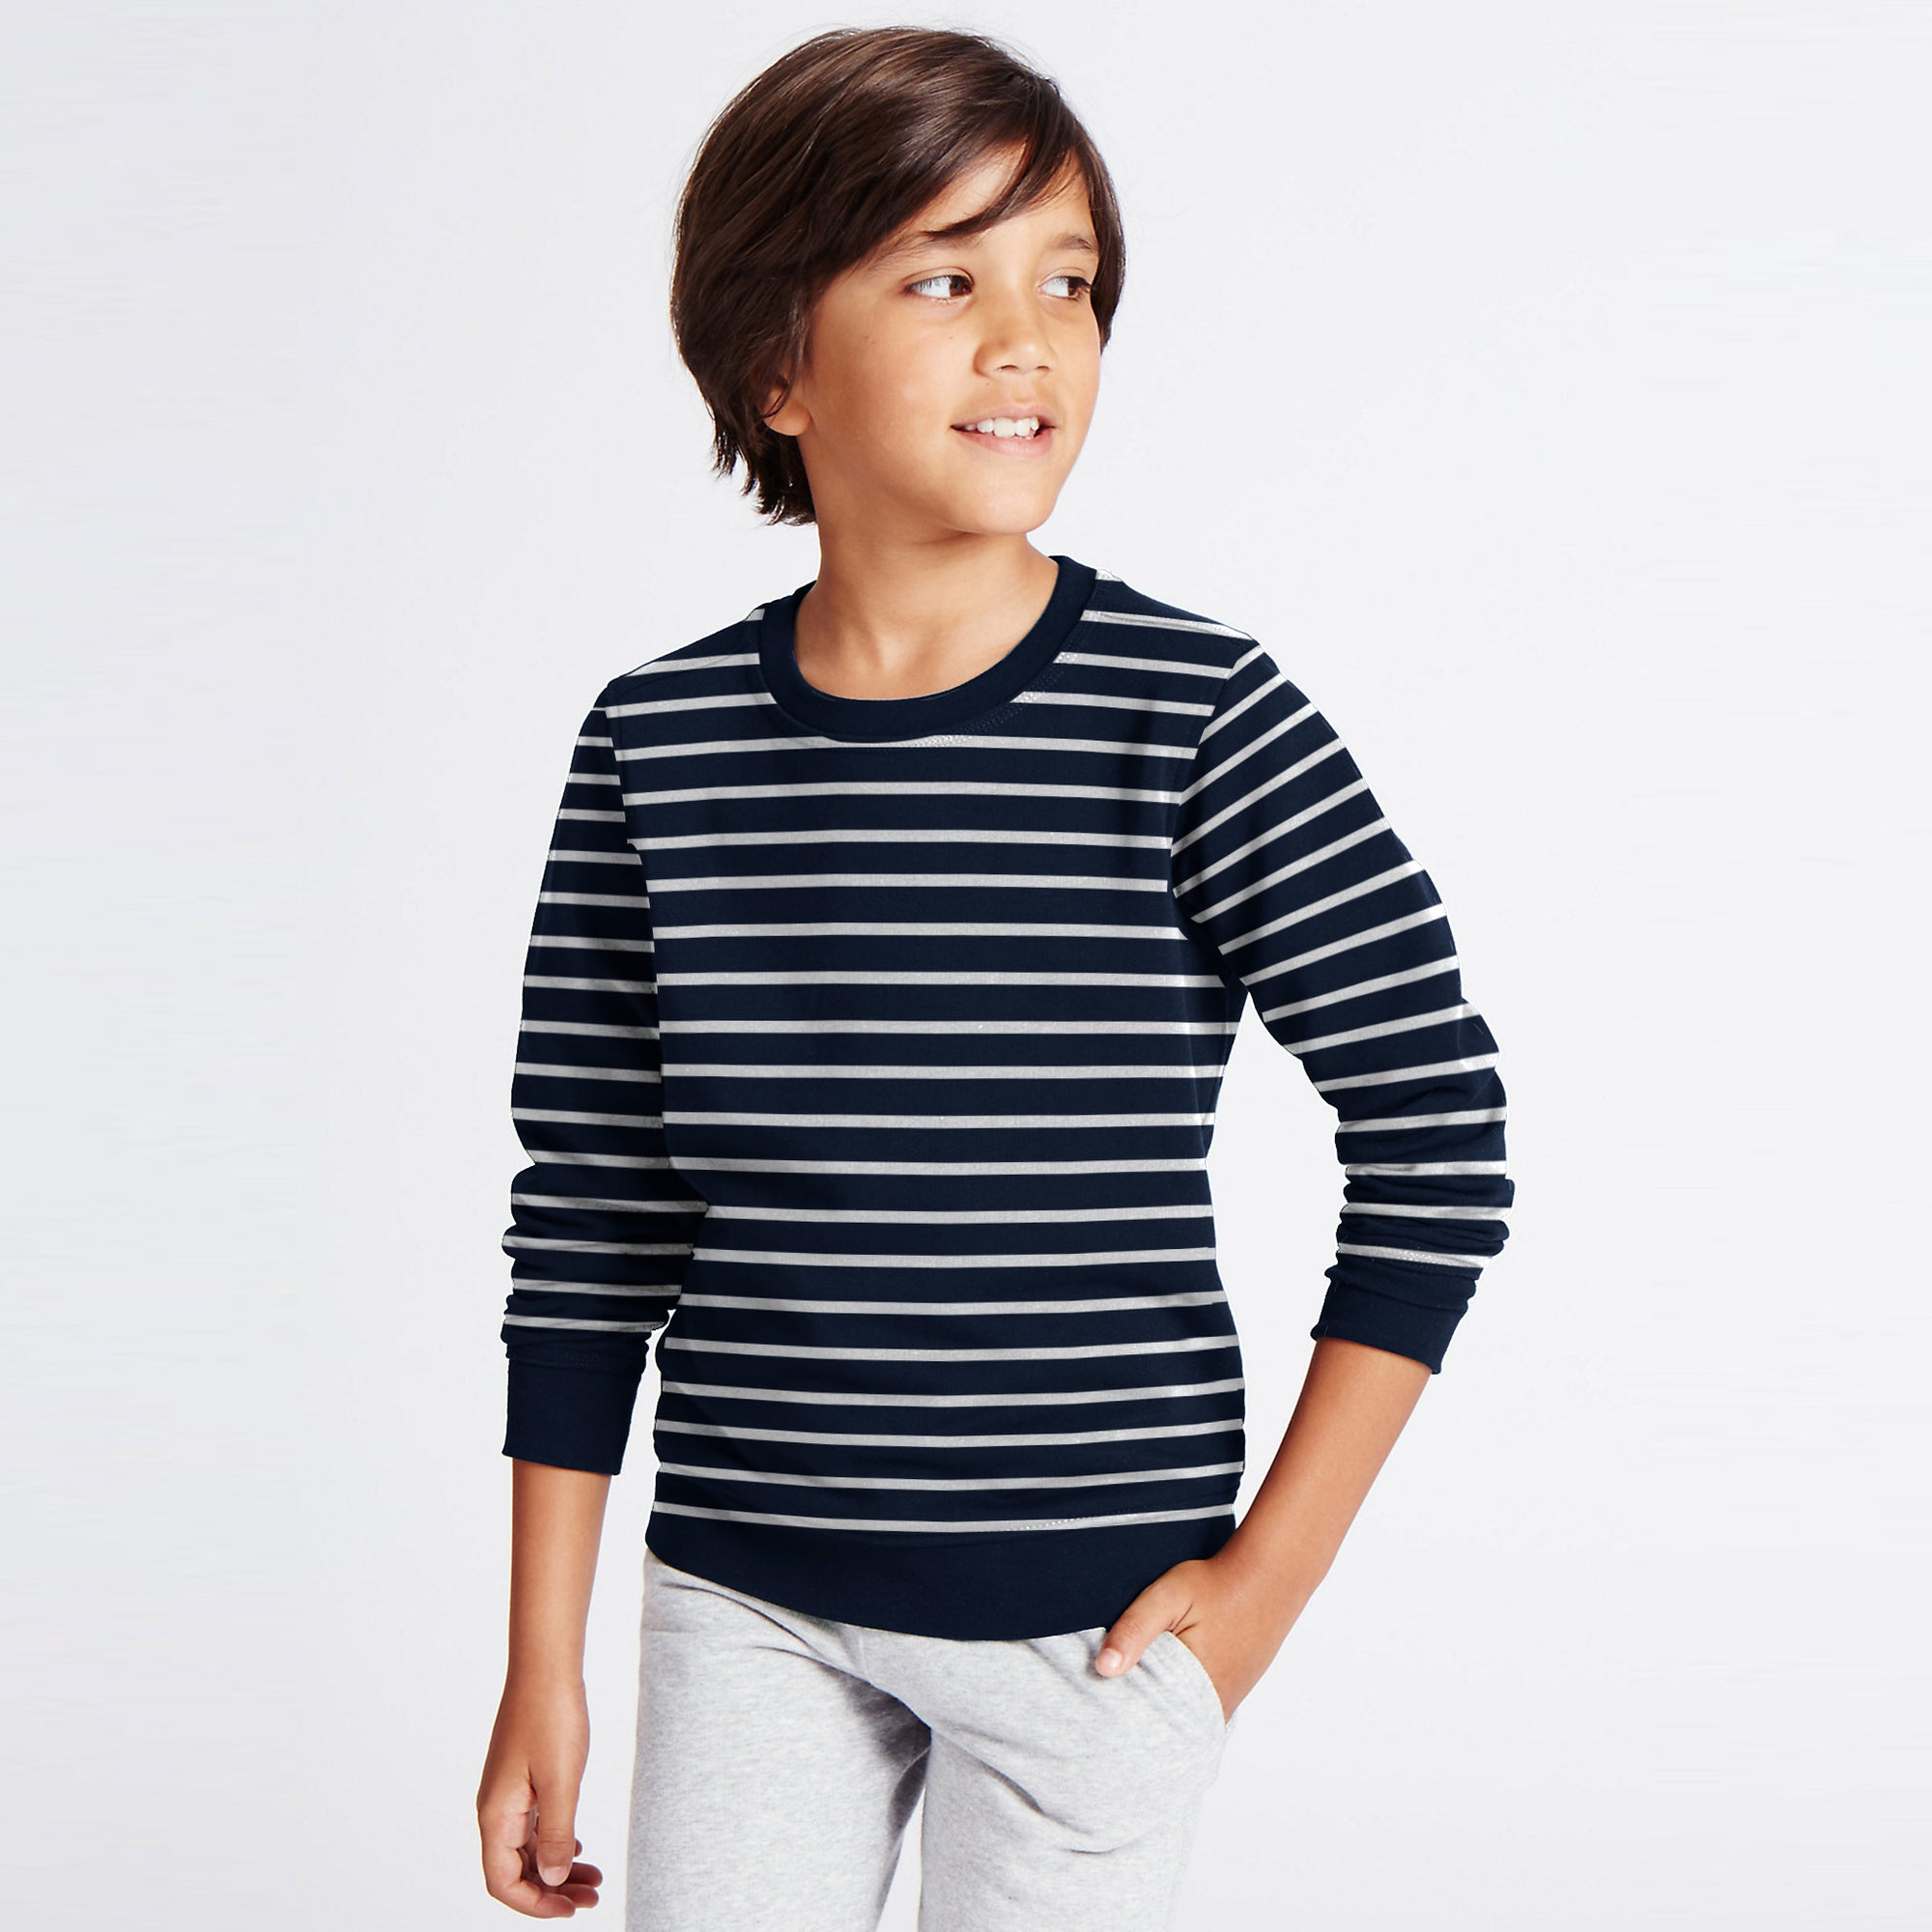 Tommy Hilfiger Terry Fleece Crew Neck Sweatshirt For Kids-Dark Navy With Stripes-SP811